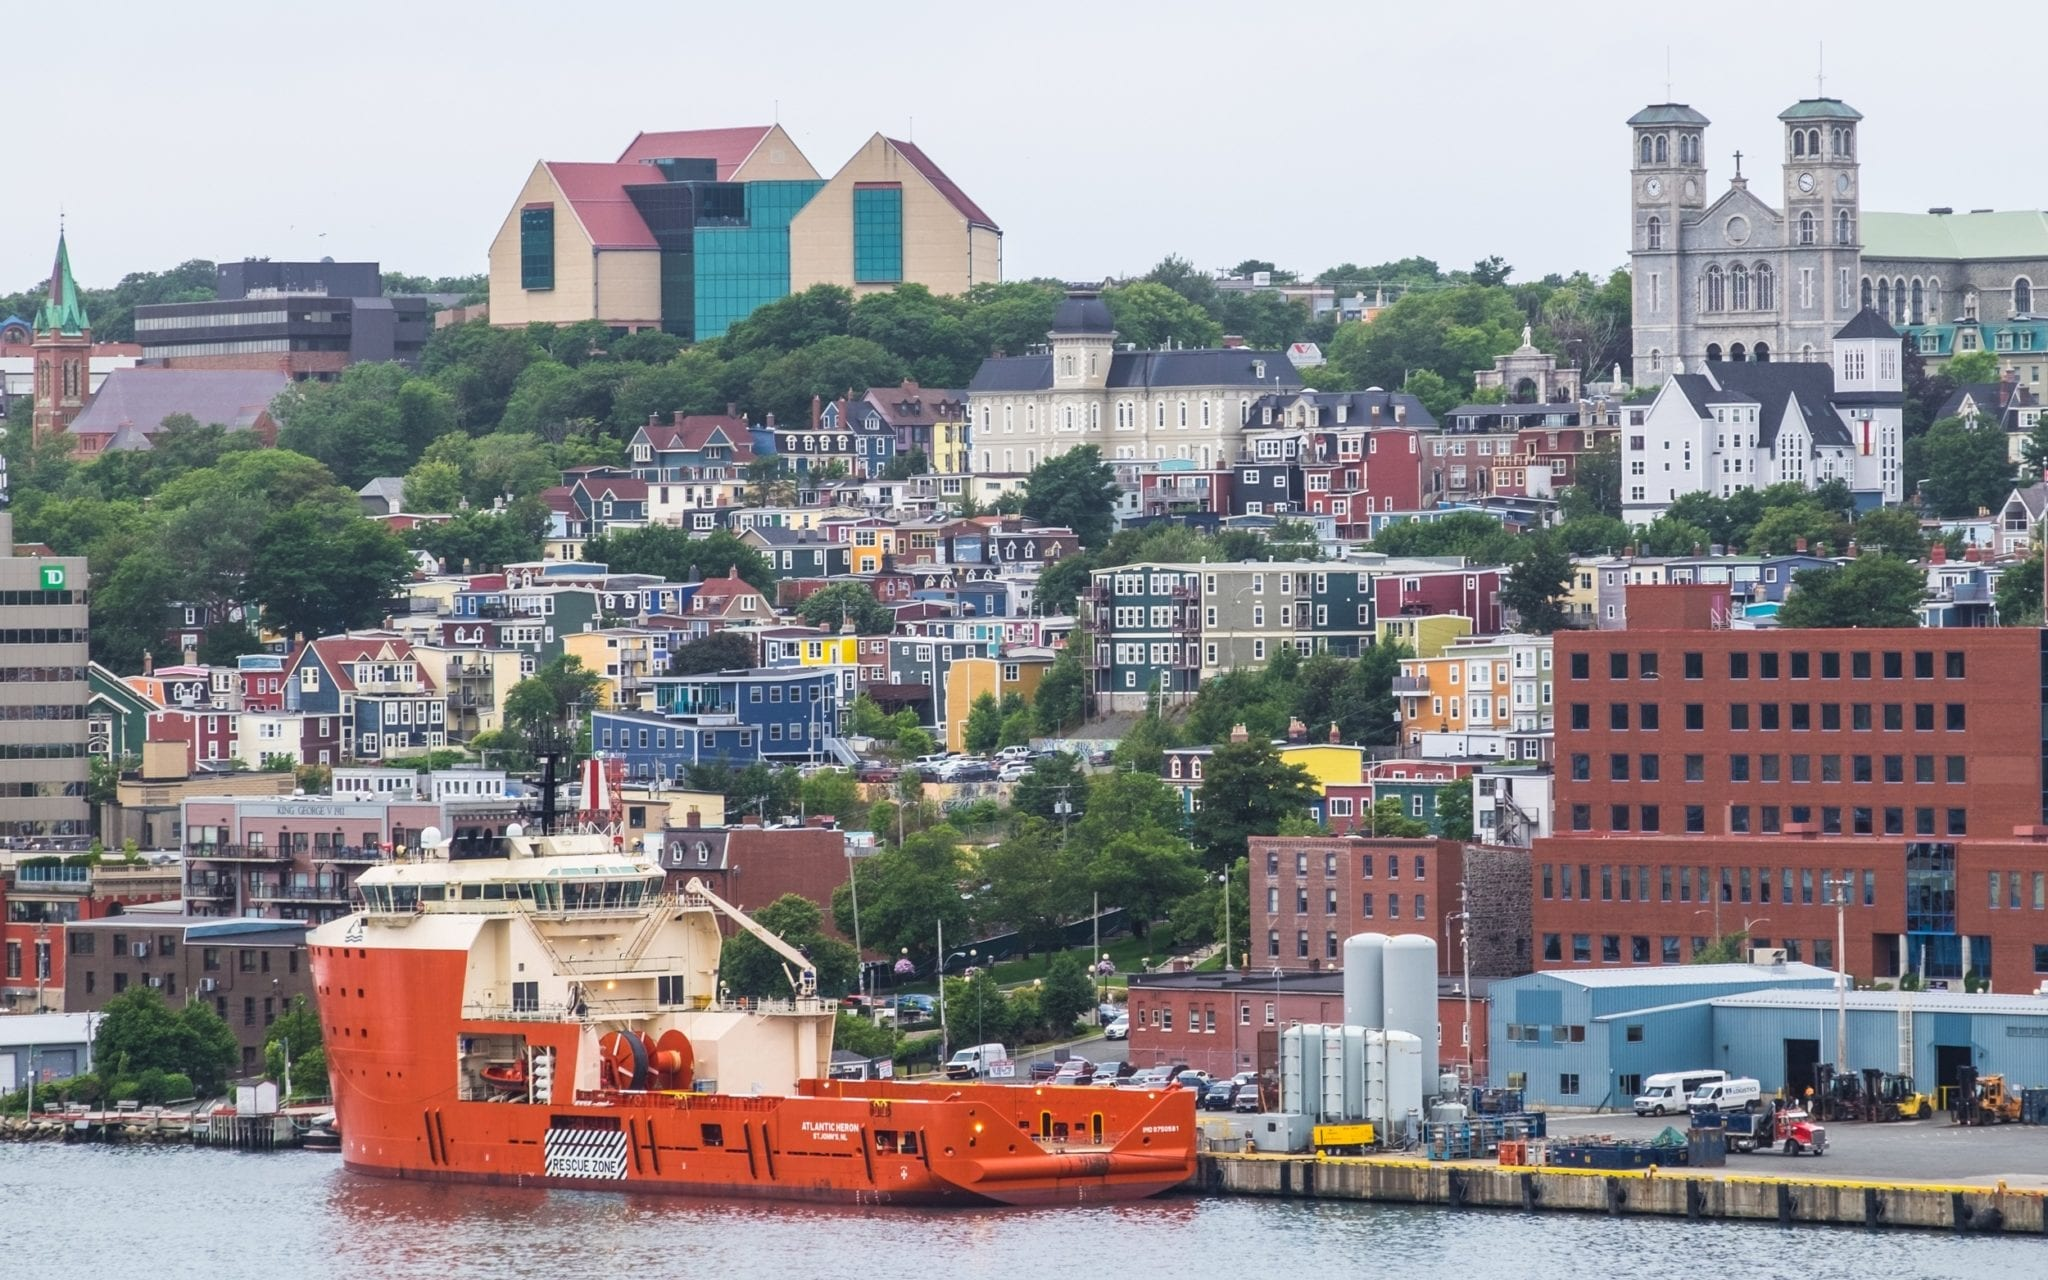 A shot of St. John's from a distance. You can see all the colorful homes on Jelly Bean Row, and a bright yellow ship in front.